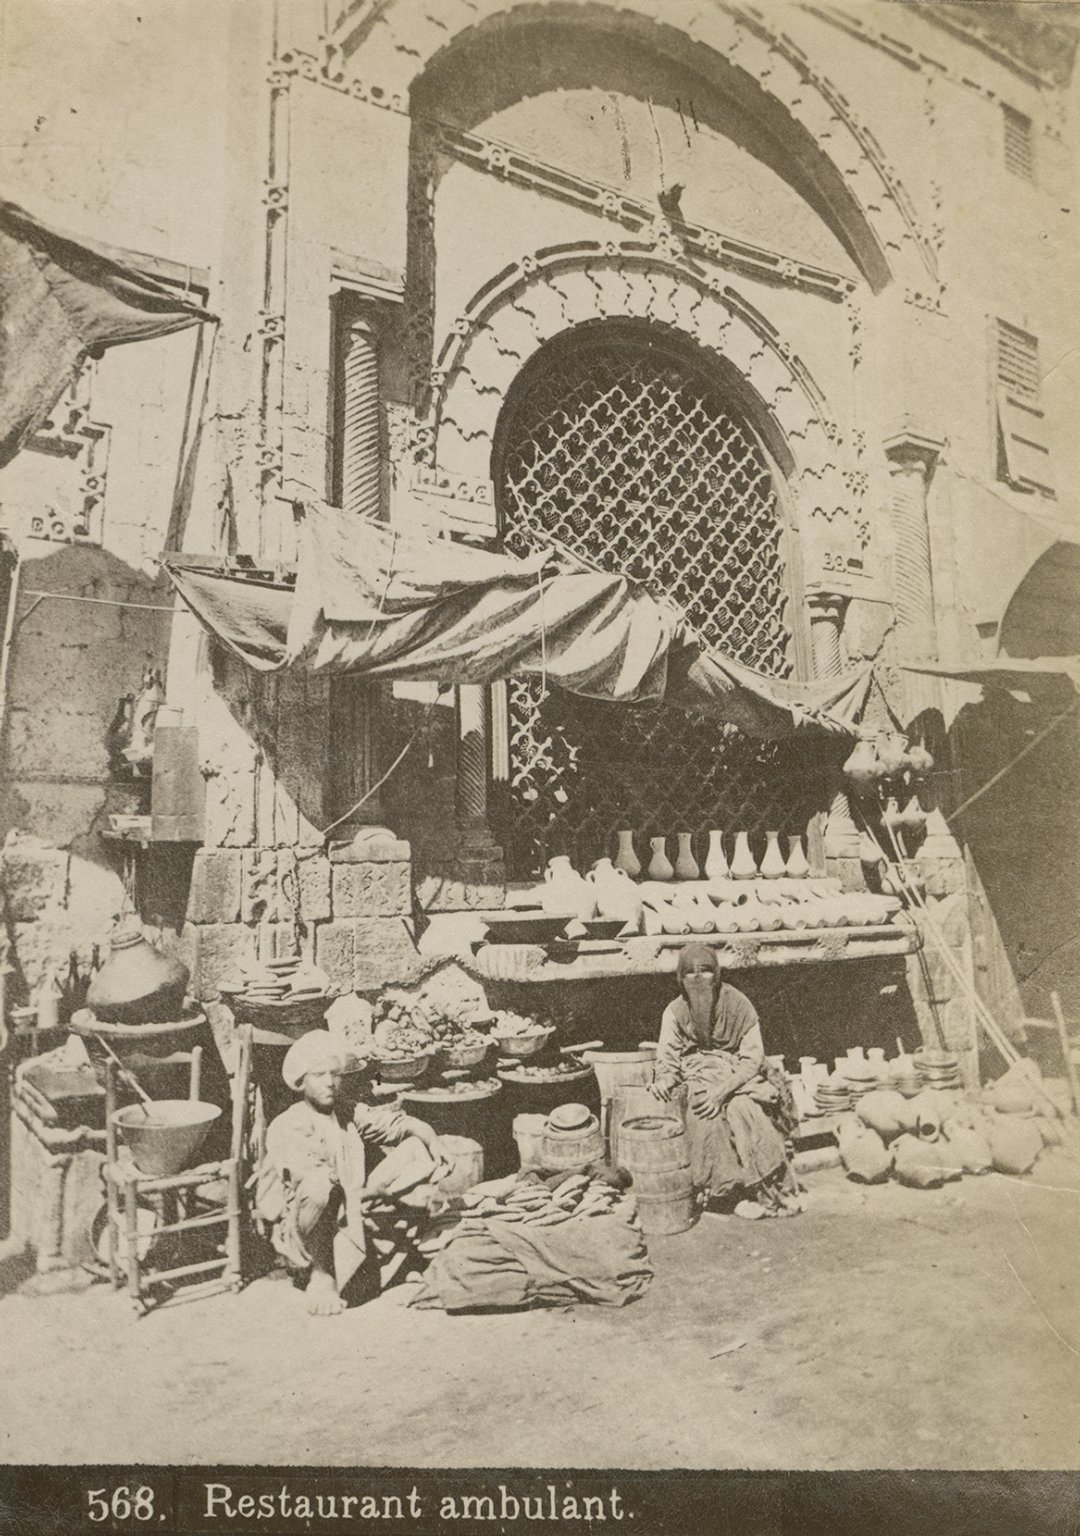 Street food vendor, possibly Cairo